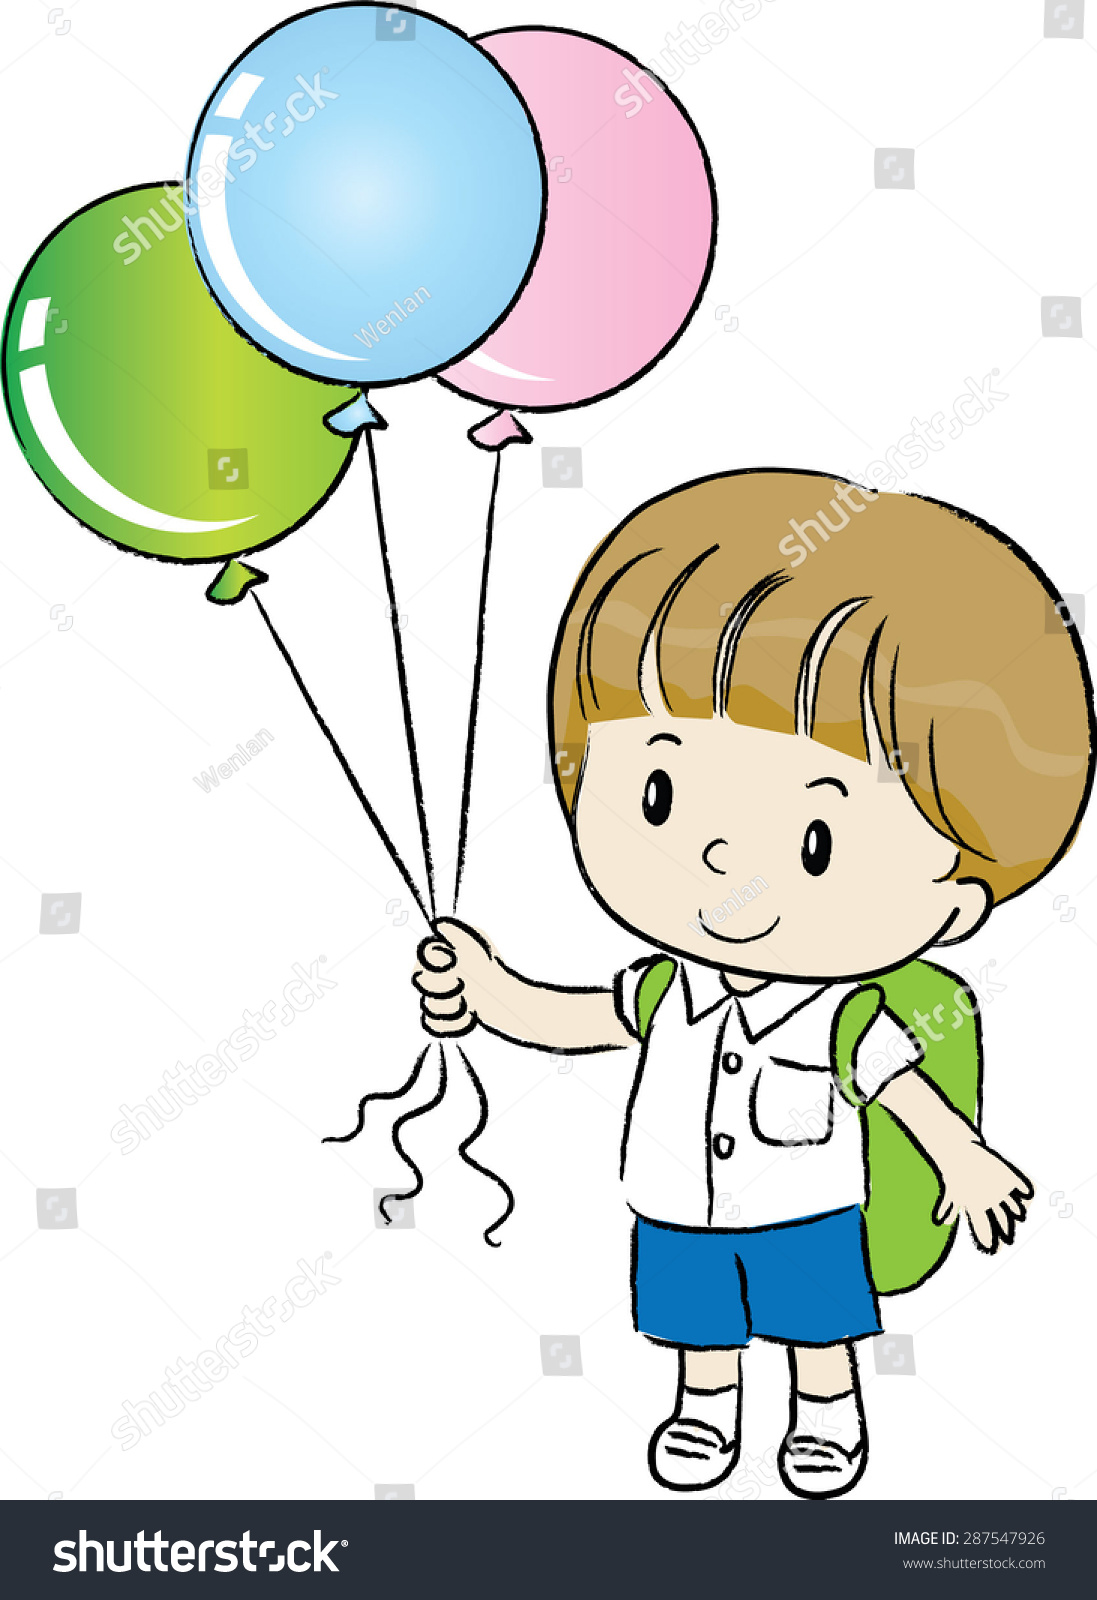 School Boy Holding Balloons Stock Vector (Royalty Free) 287547926.